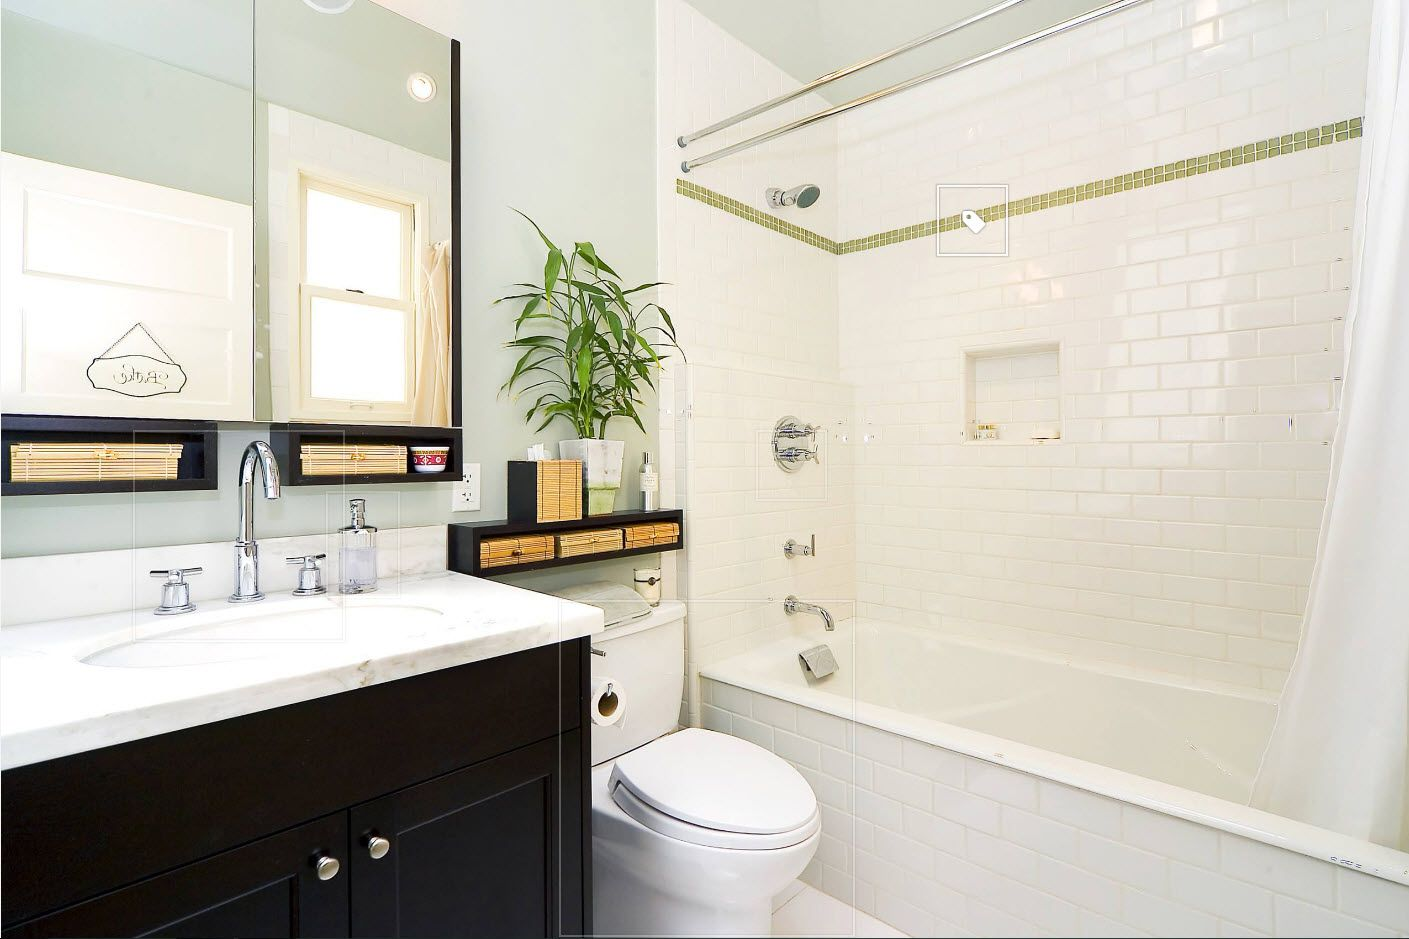 Contemp style at the light pastel colored bathroom